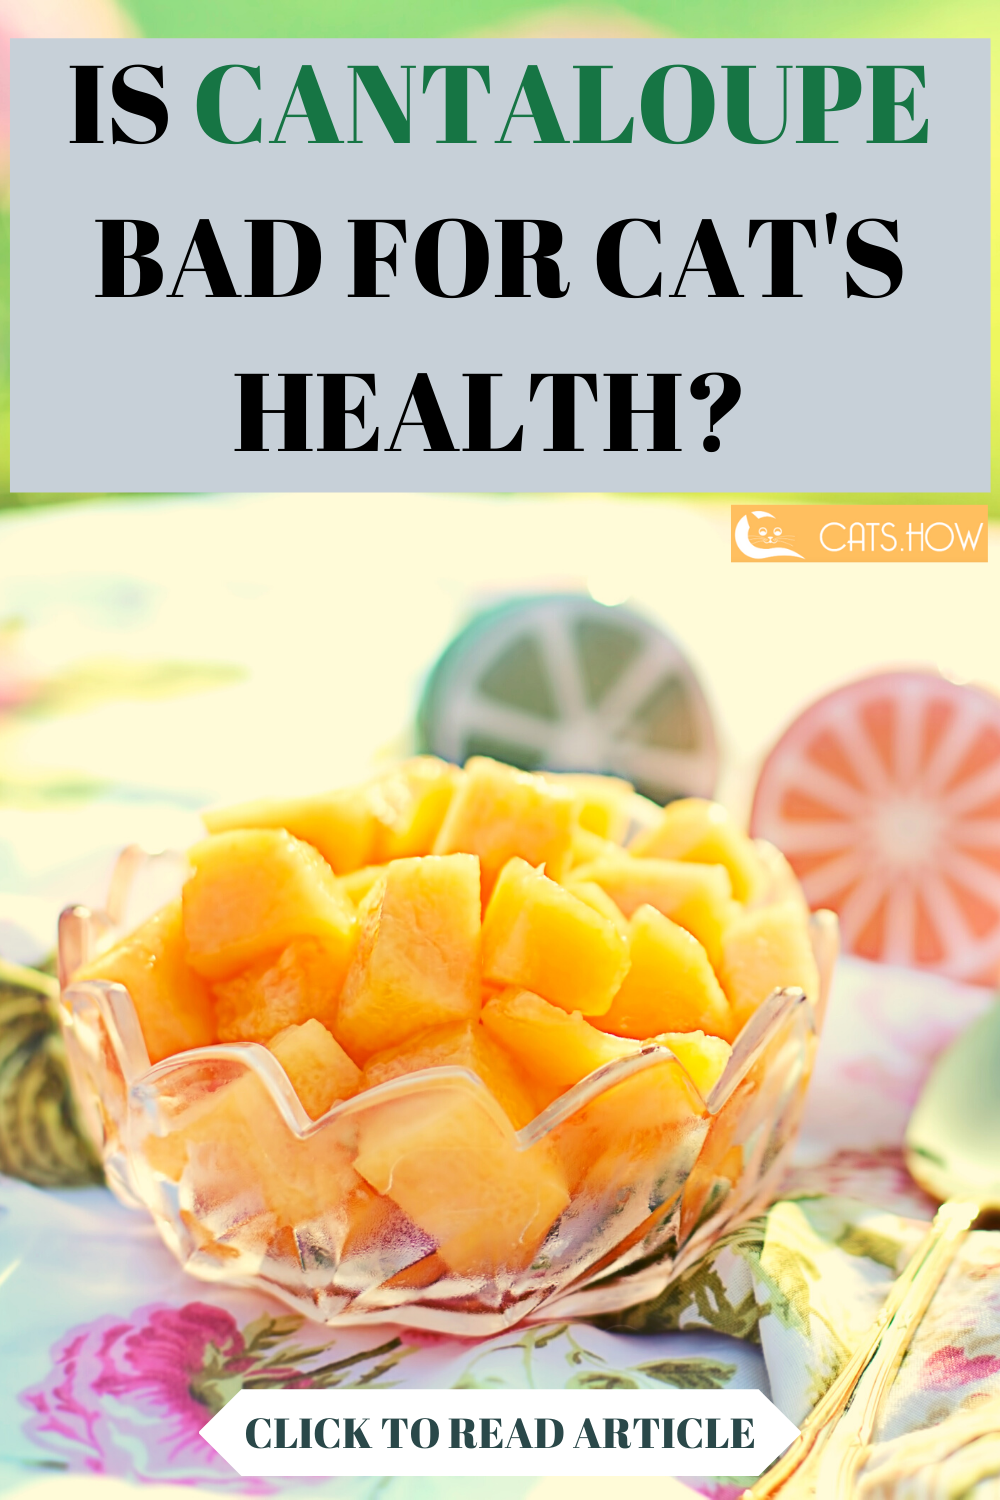 Can Cats Eat Cantaloupe (With images) Cantaloupe, Eat